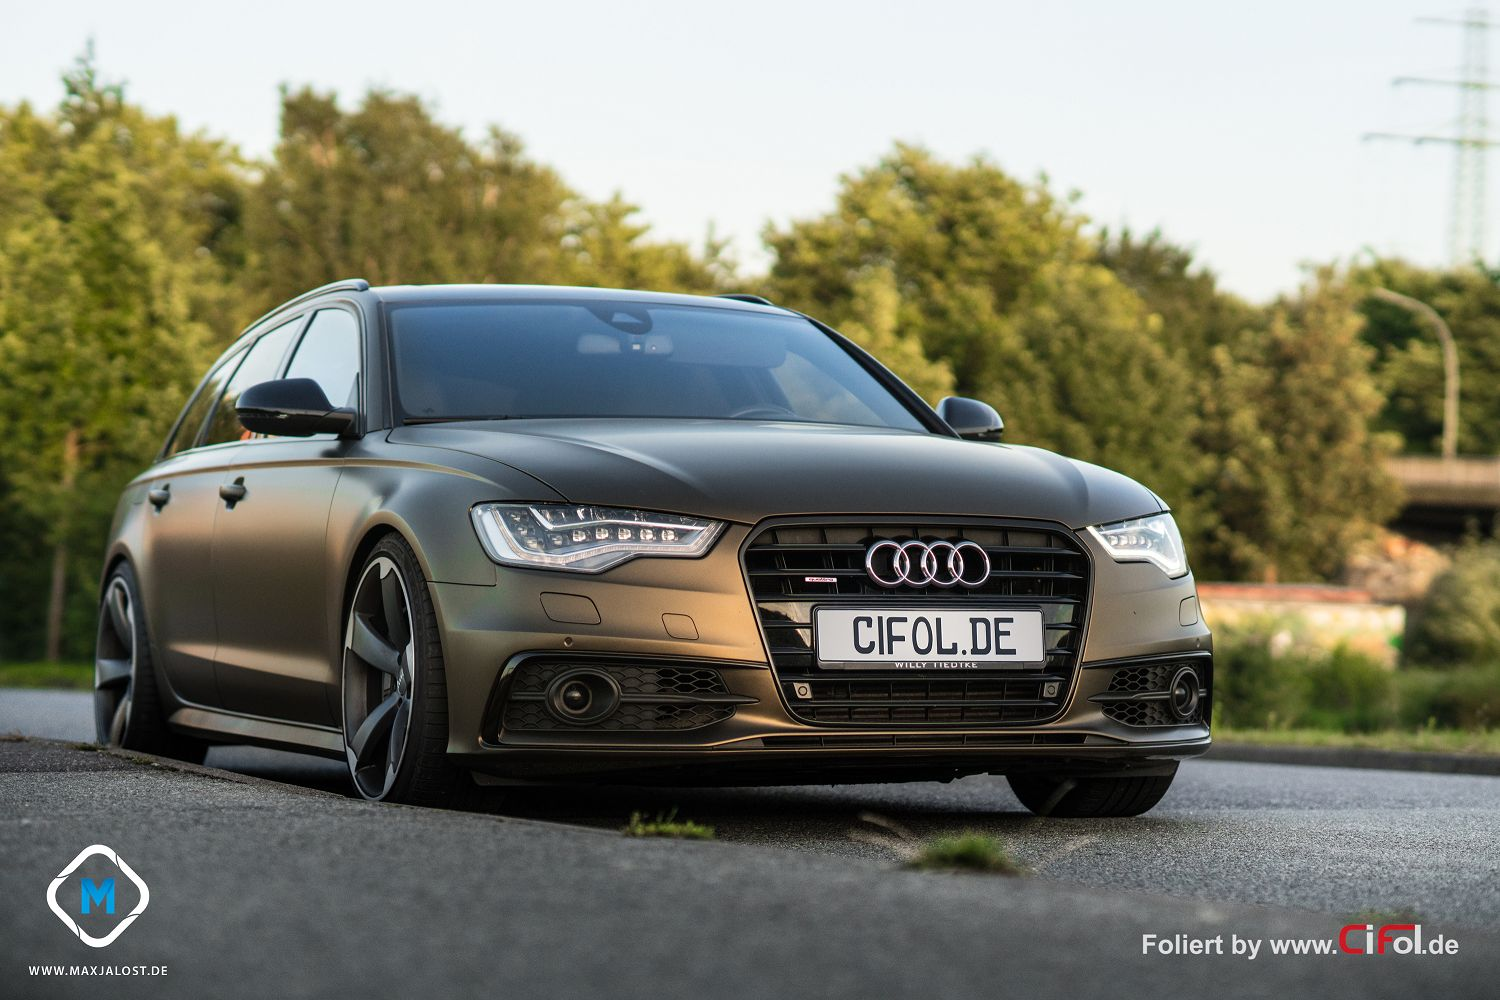 PWF exclusive Folierung Audi A6